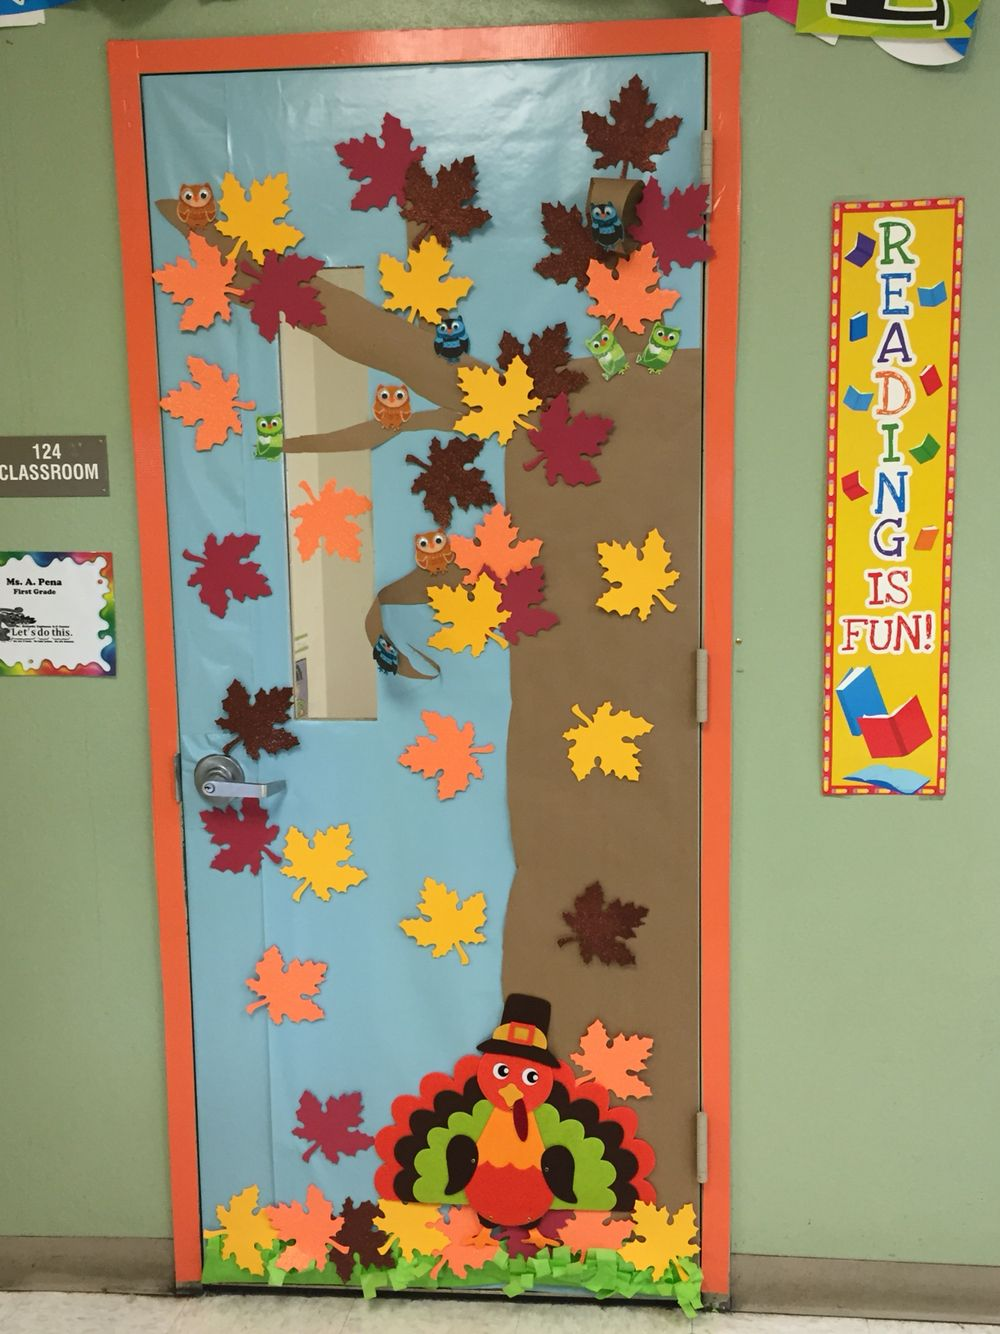 Classroom door decoration fall decoraci n de puerta oto o for Decoracion puerta otono